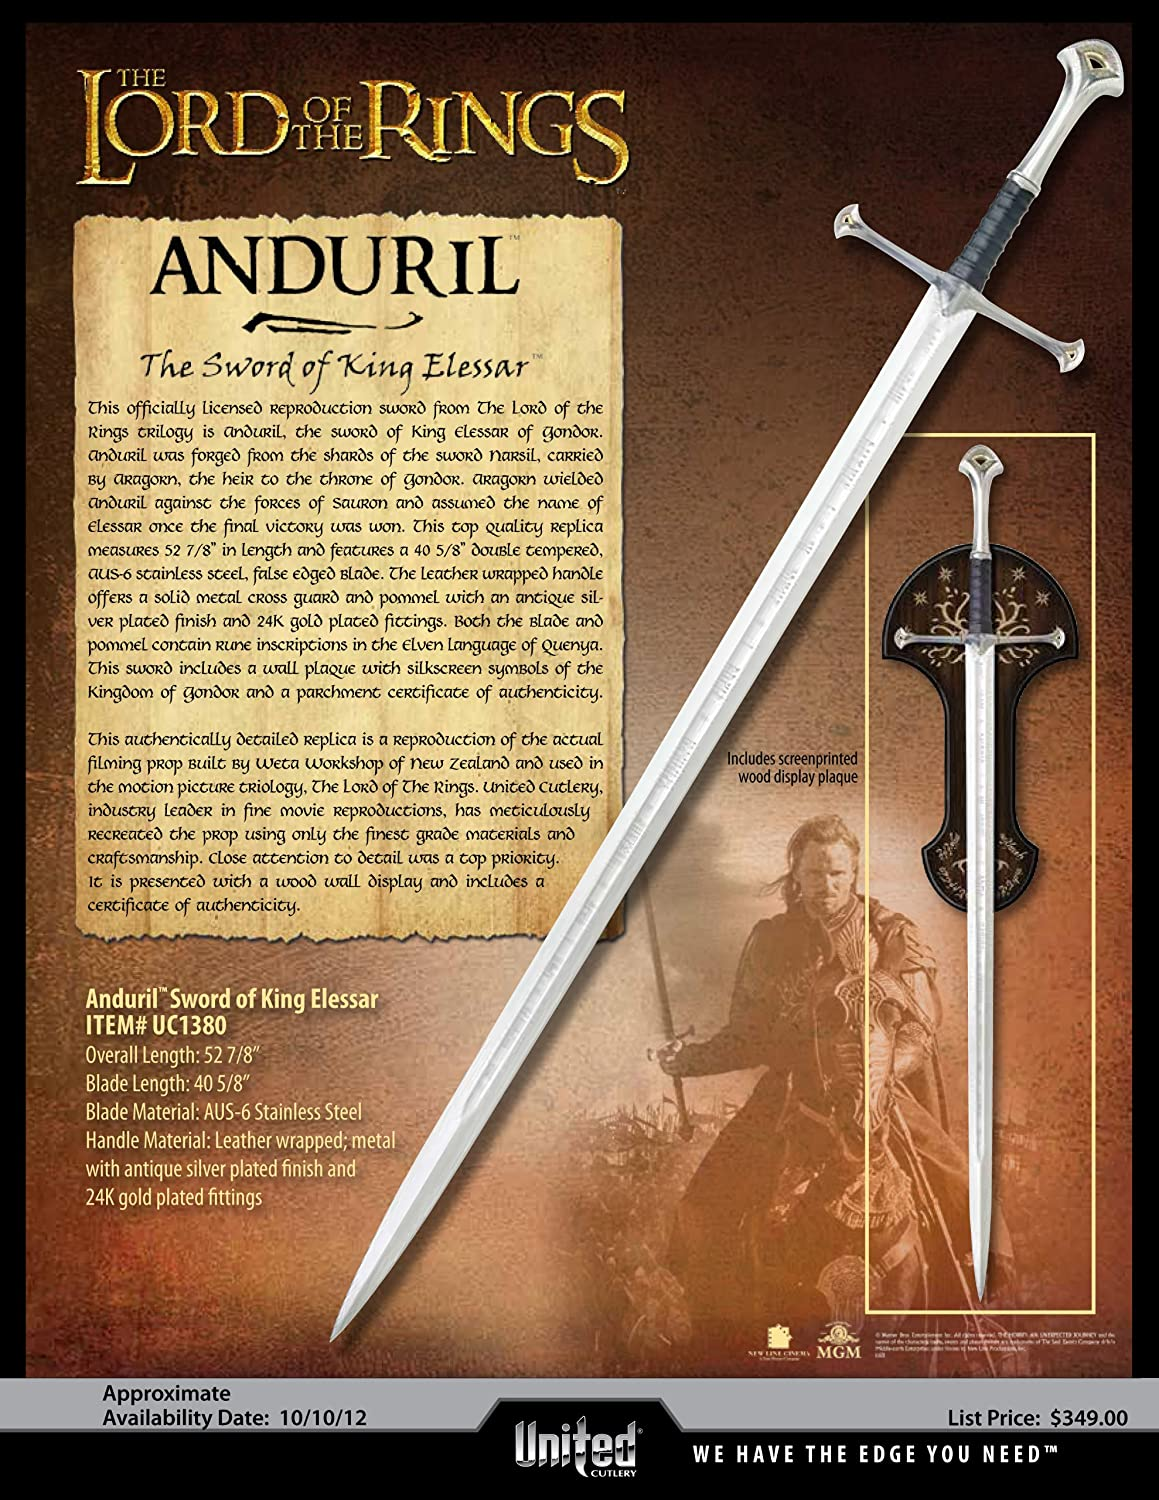 Lord of the rings swords for sale nz – Stijlvolle sieraden 2018